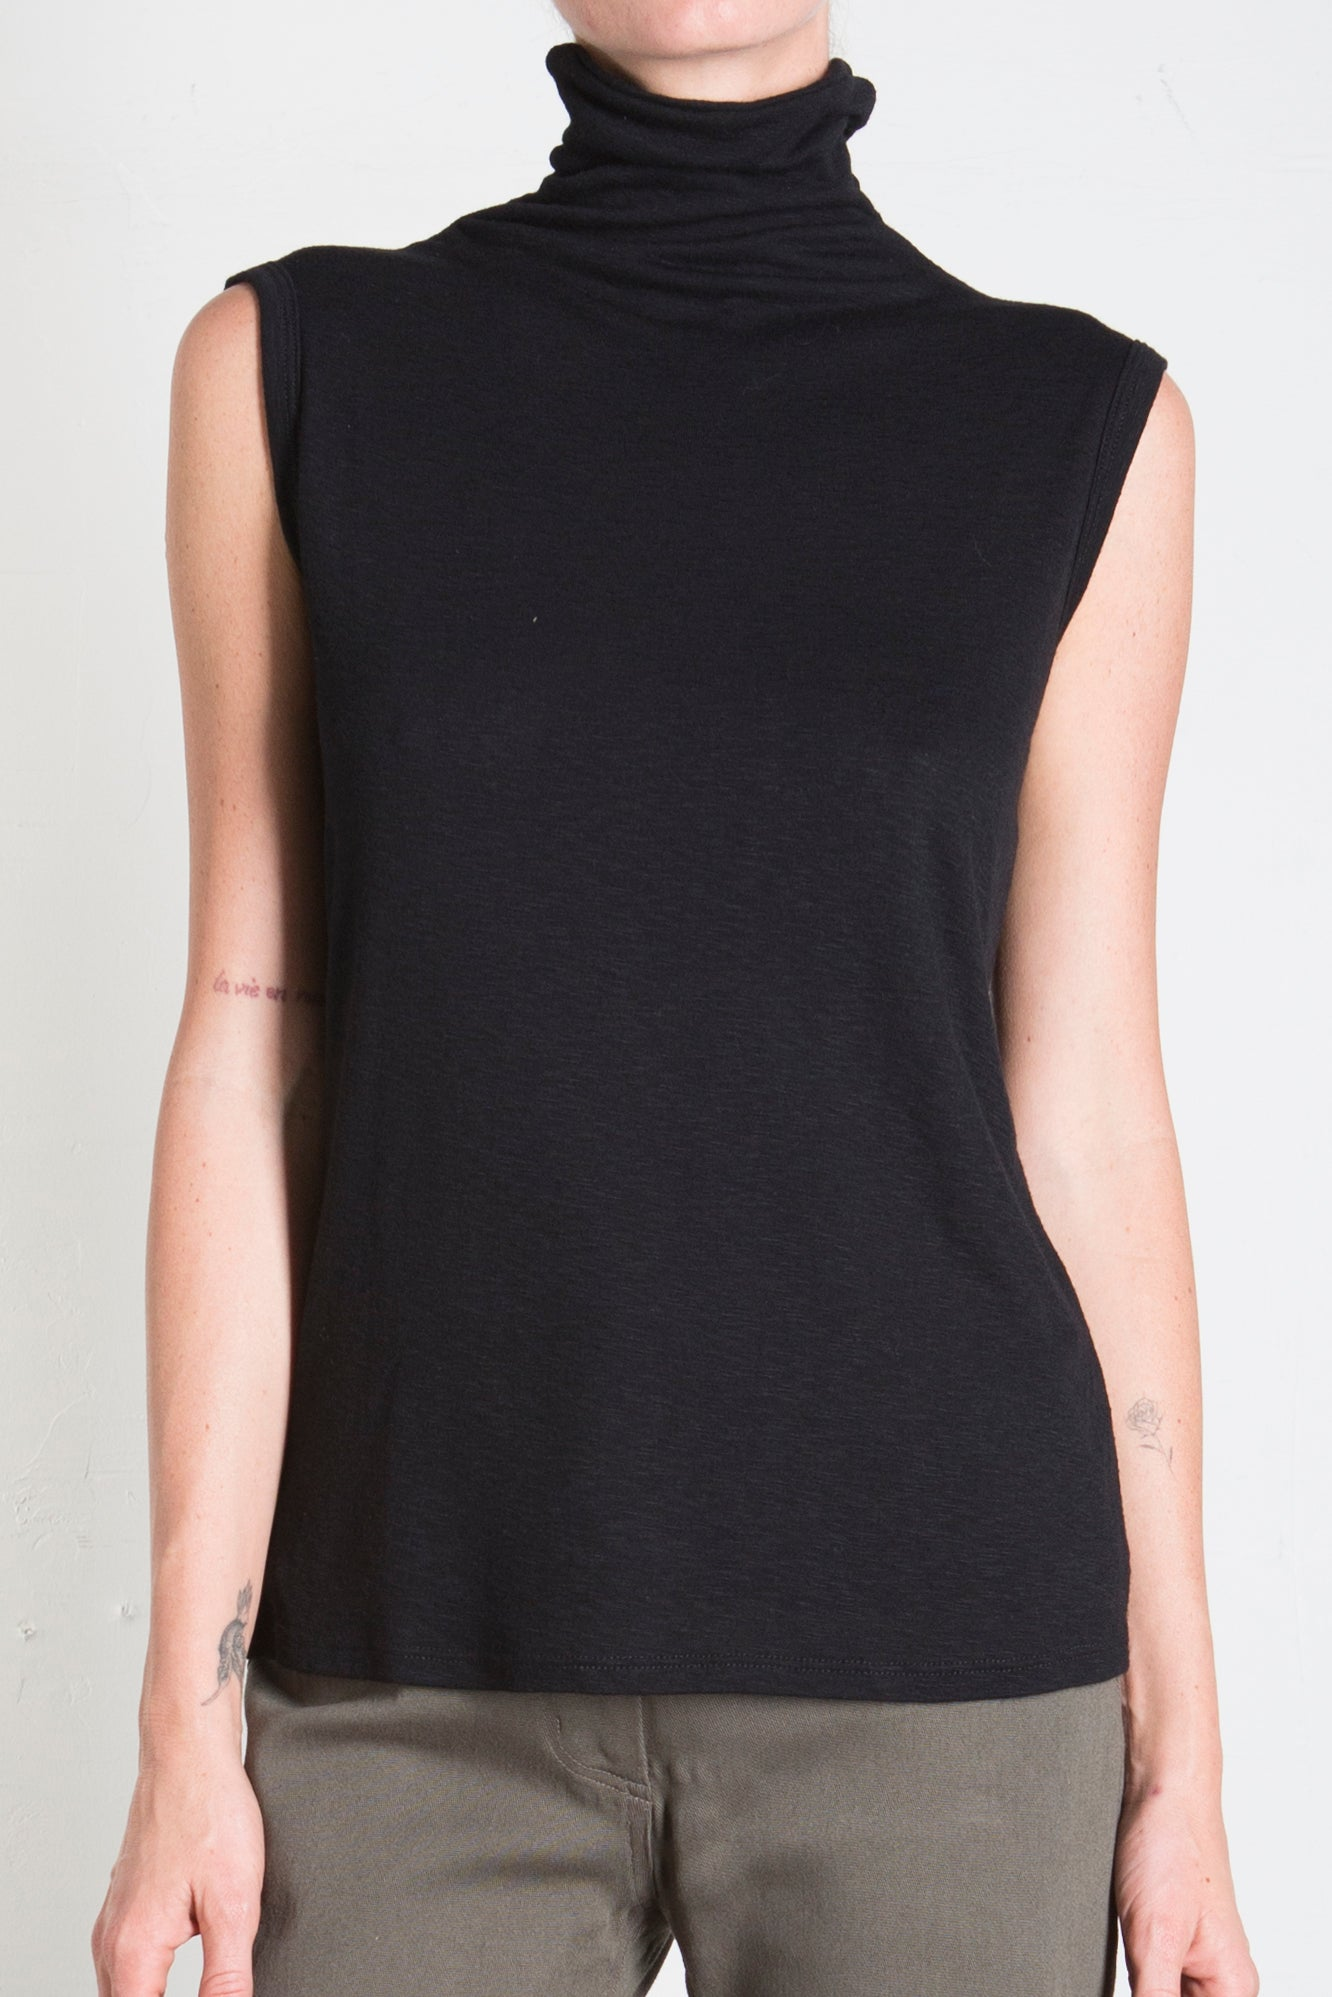 PLUSH SLEEVELESS MOCK TURTLENECK - BLACK